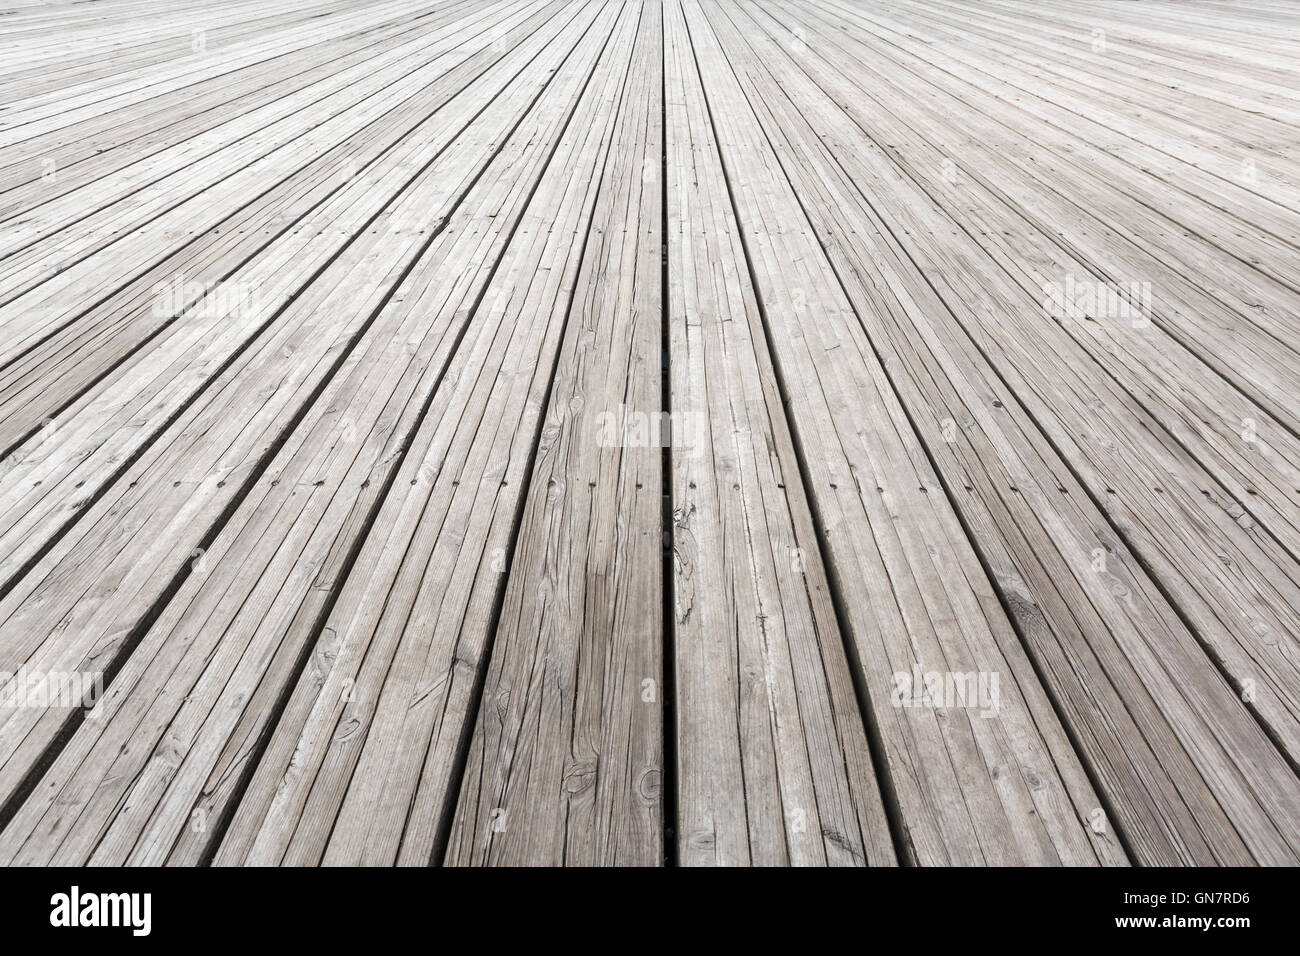 wooden floor for Wood Background Texture perspective. wooden floor for Wood Background Texture perspective Stock Photo